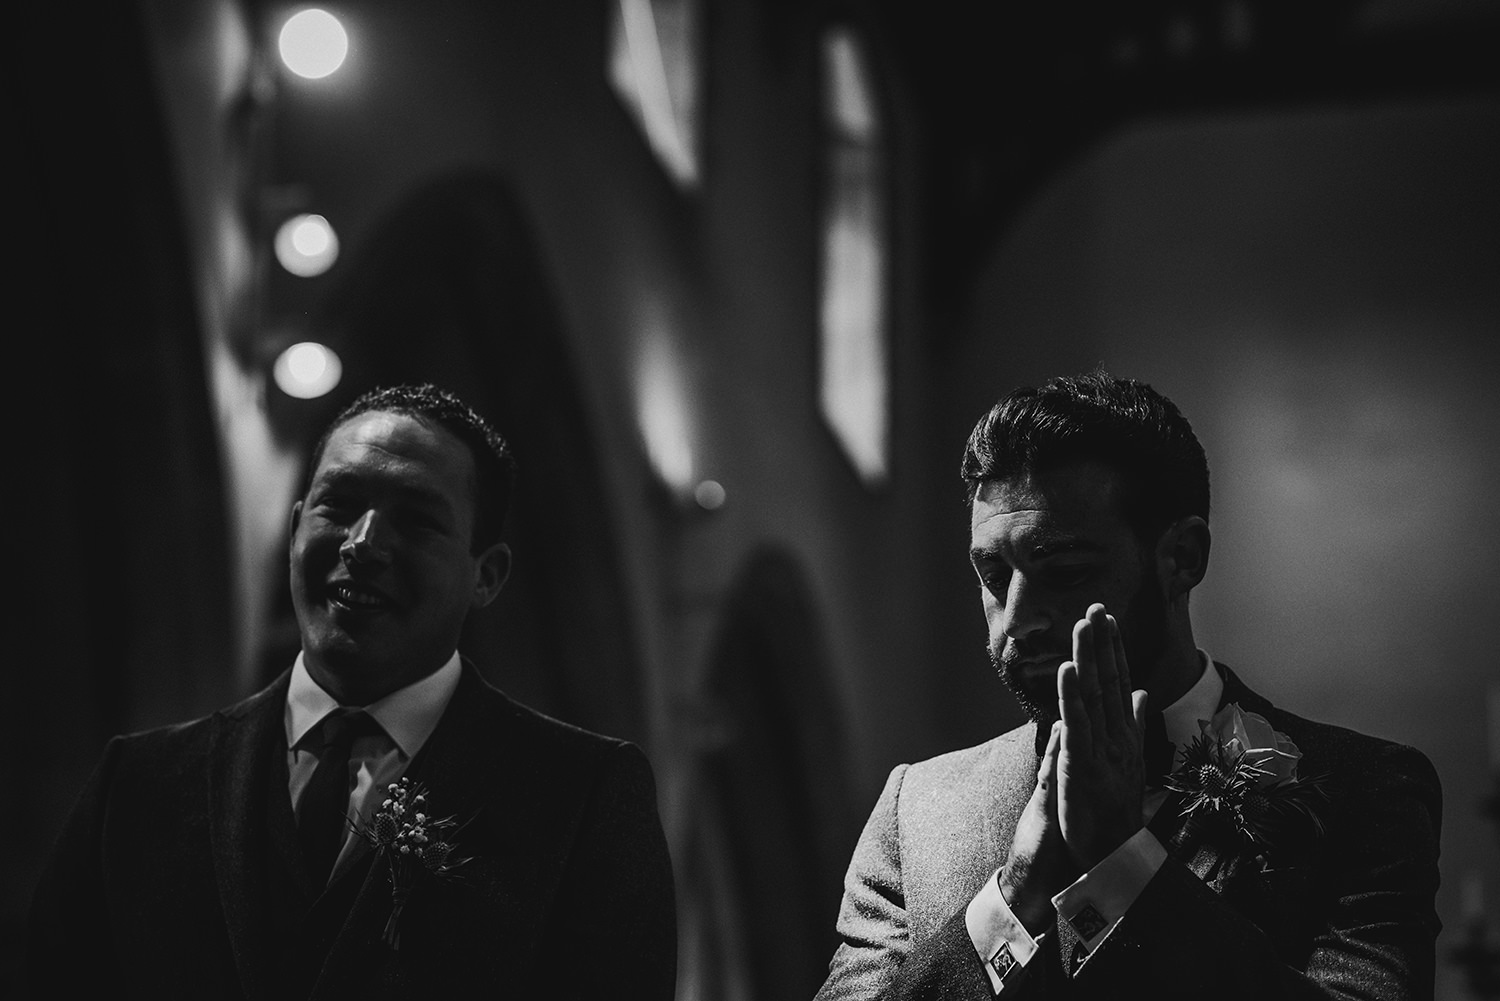 bw photo. Groom rubs hands nervously in strong light